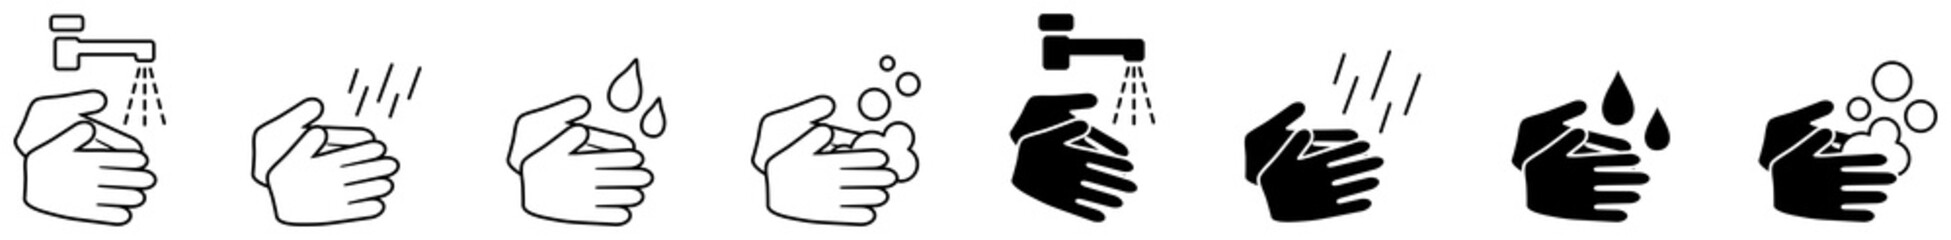 Wash your hands icons set, simple black and white hand drawing with water tap, drop, soap bubble sign